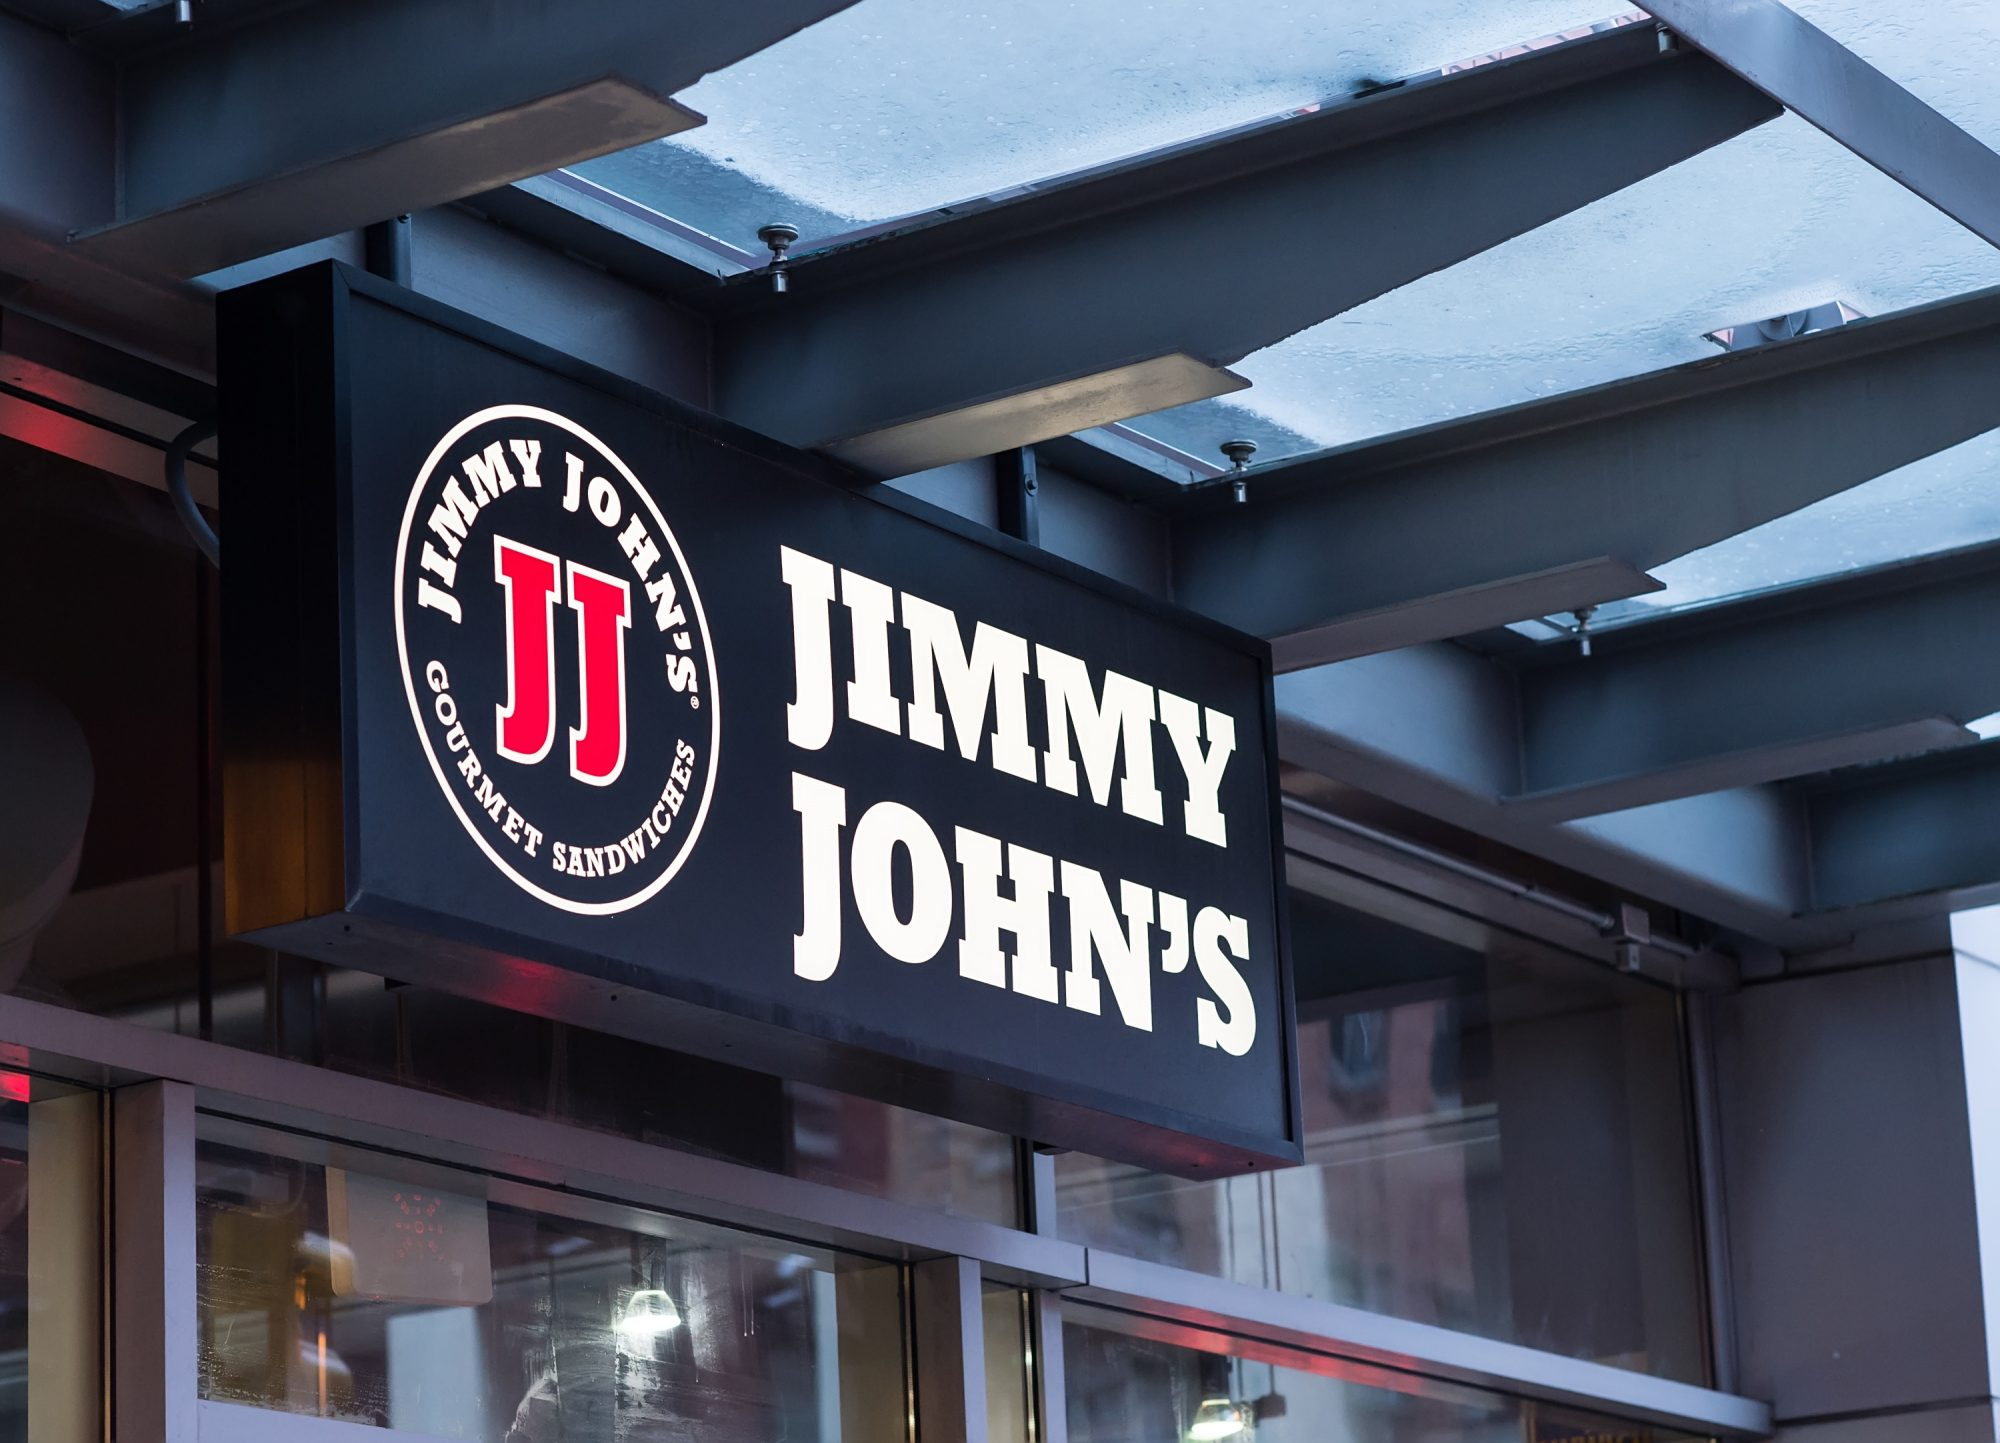 Everything You Need to Know About Getting a $1 Sub at Jimmy John's Today